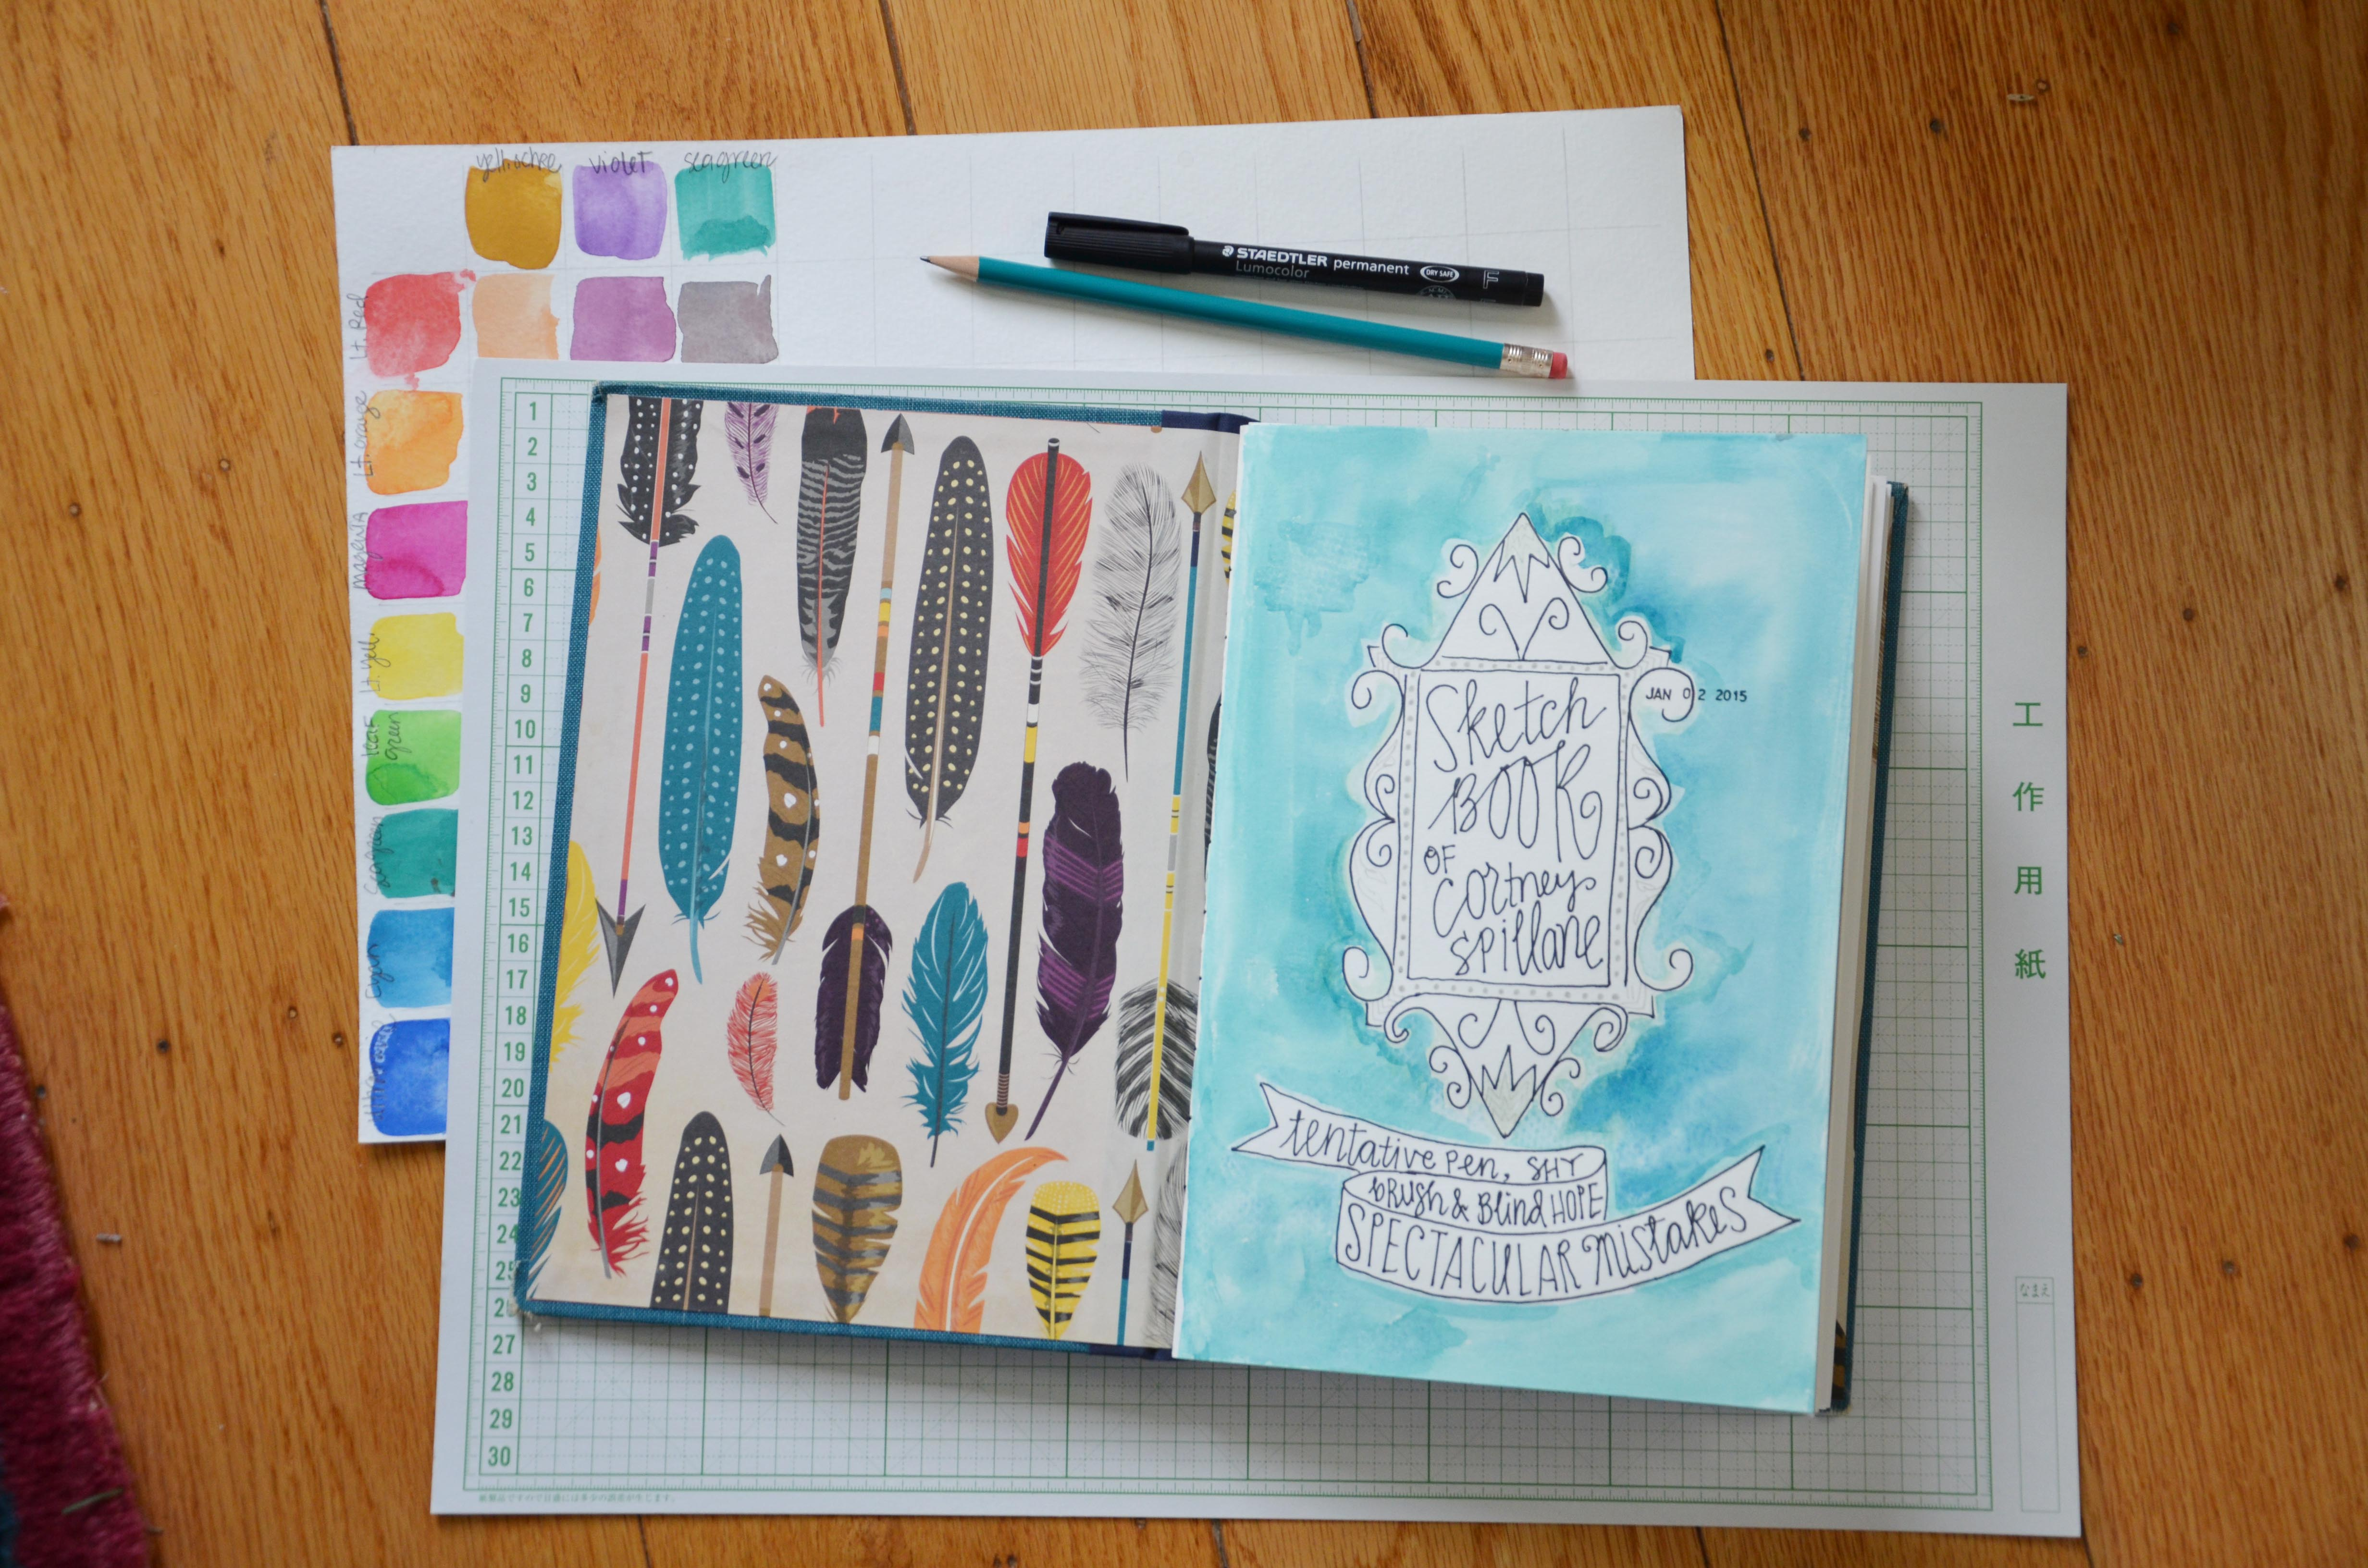 Craft Book Cover Page : Art craft narrative creativity stories